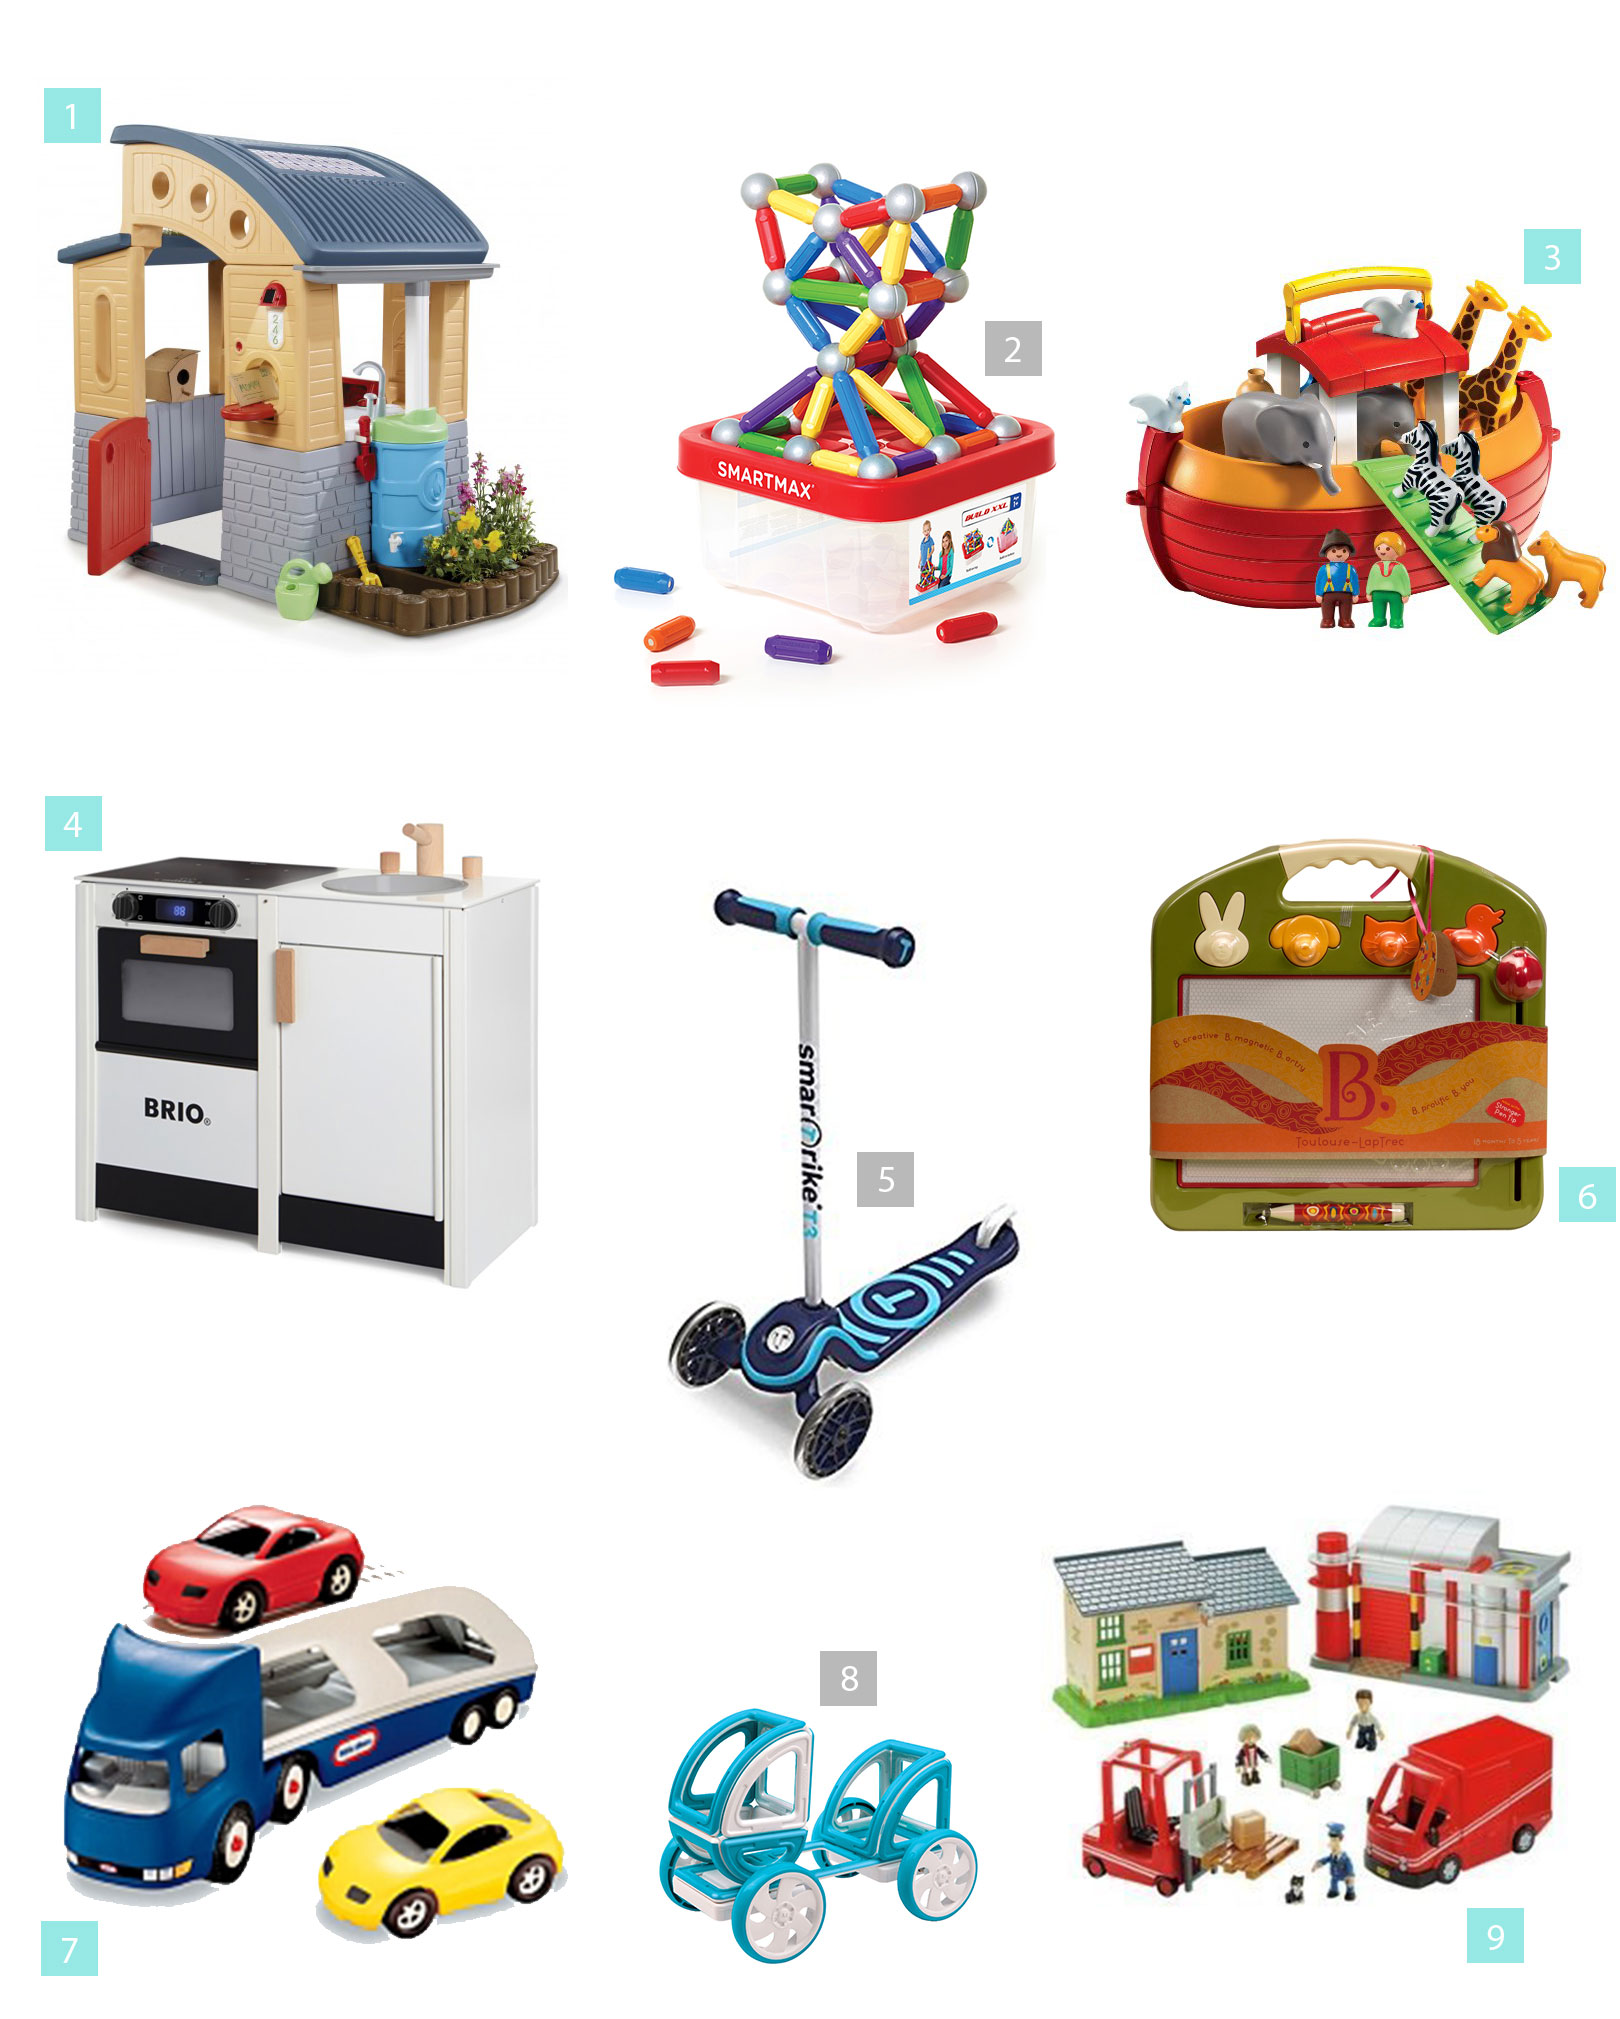 Toddler Christmas and Birthday Gift Guide for Two Year Olds